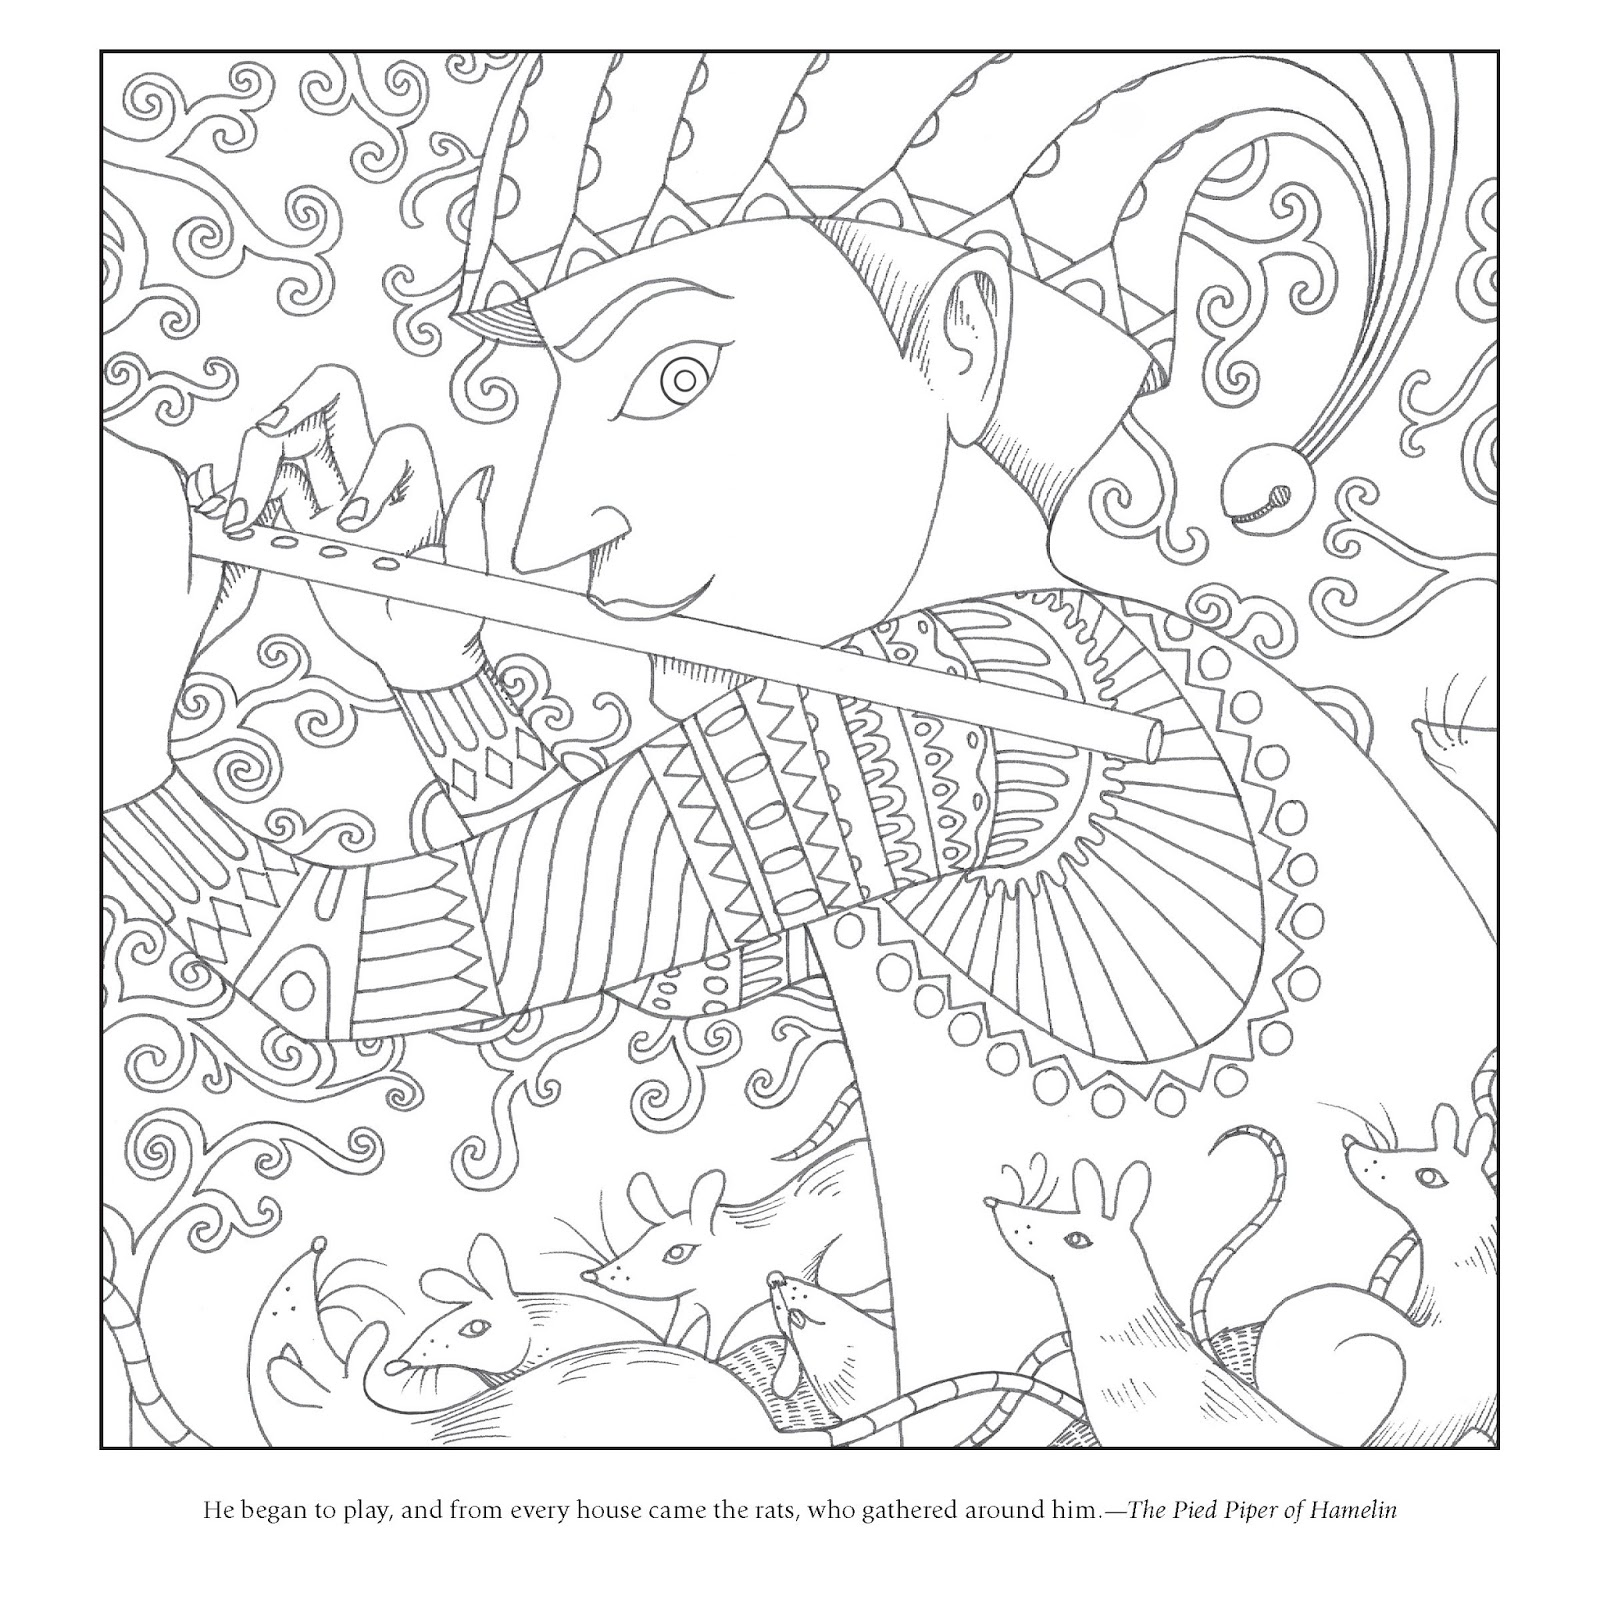 grimm fairy tale coloring pages - photo#18